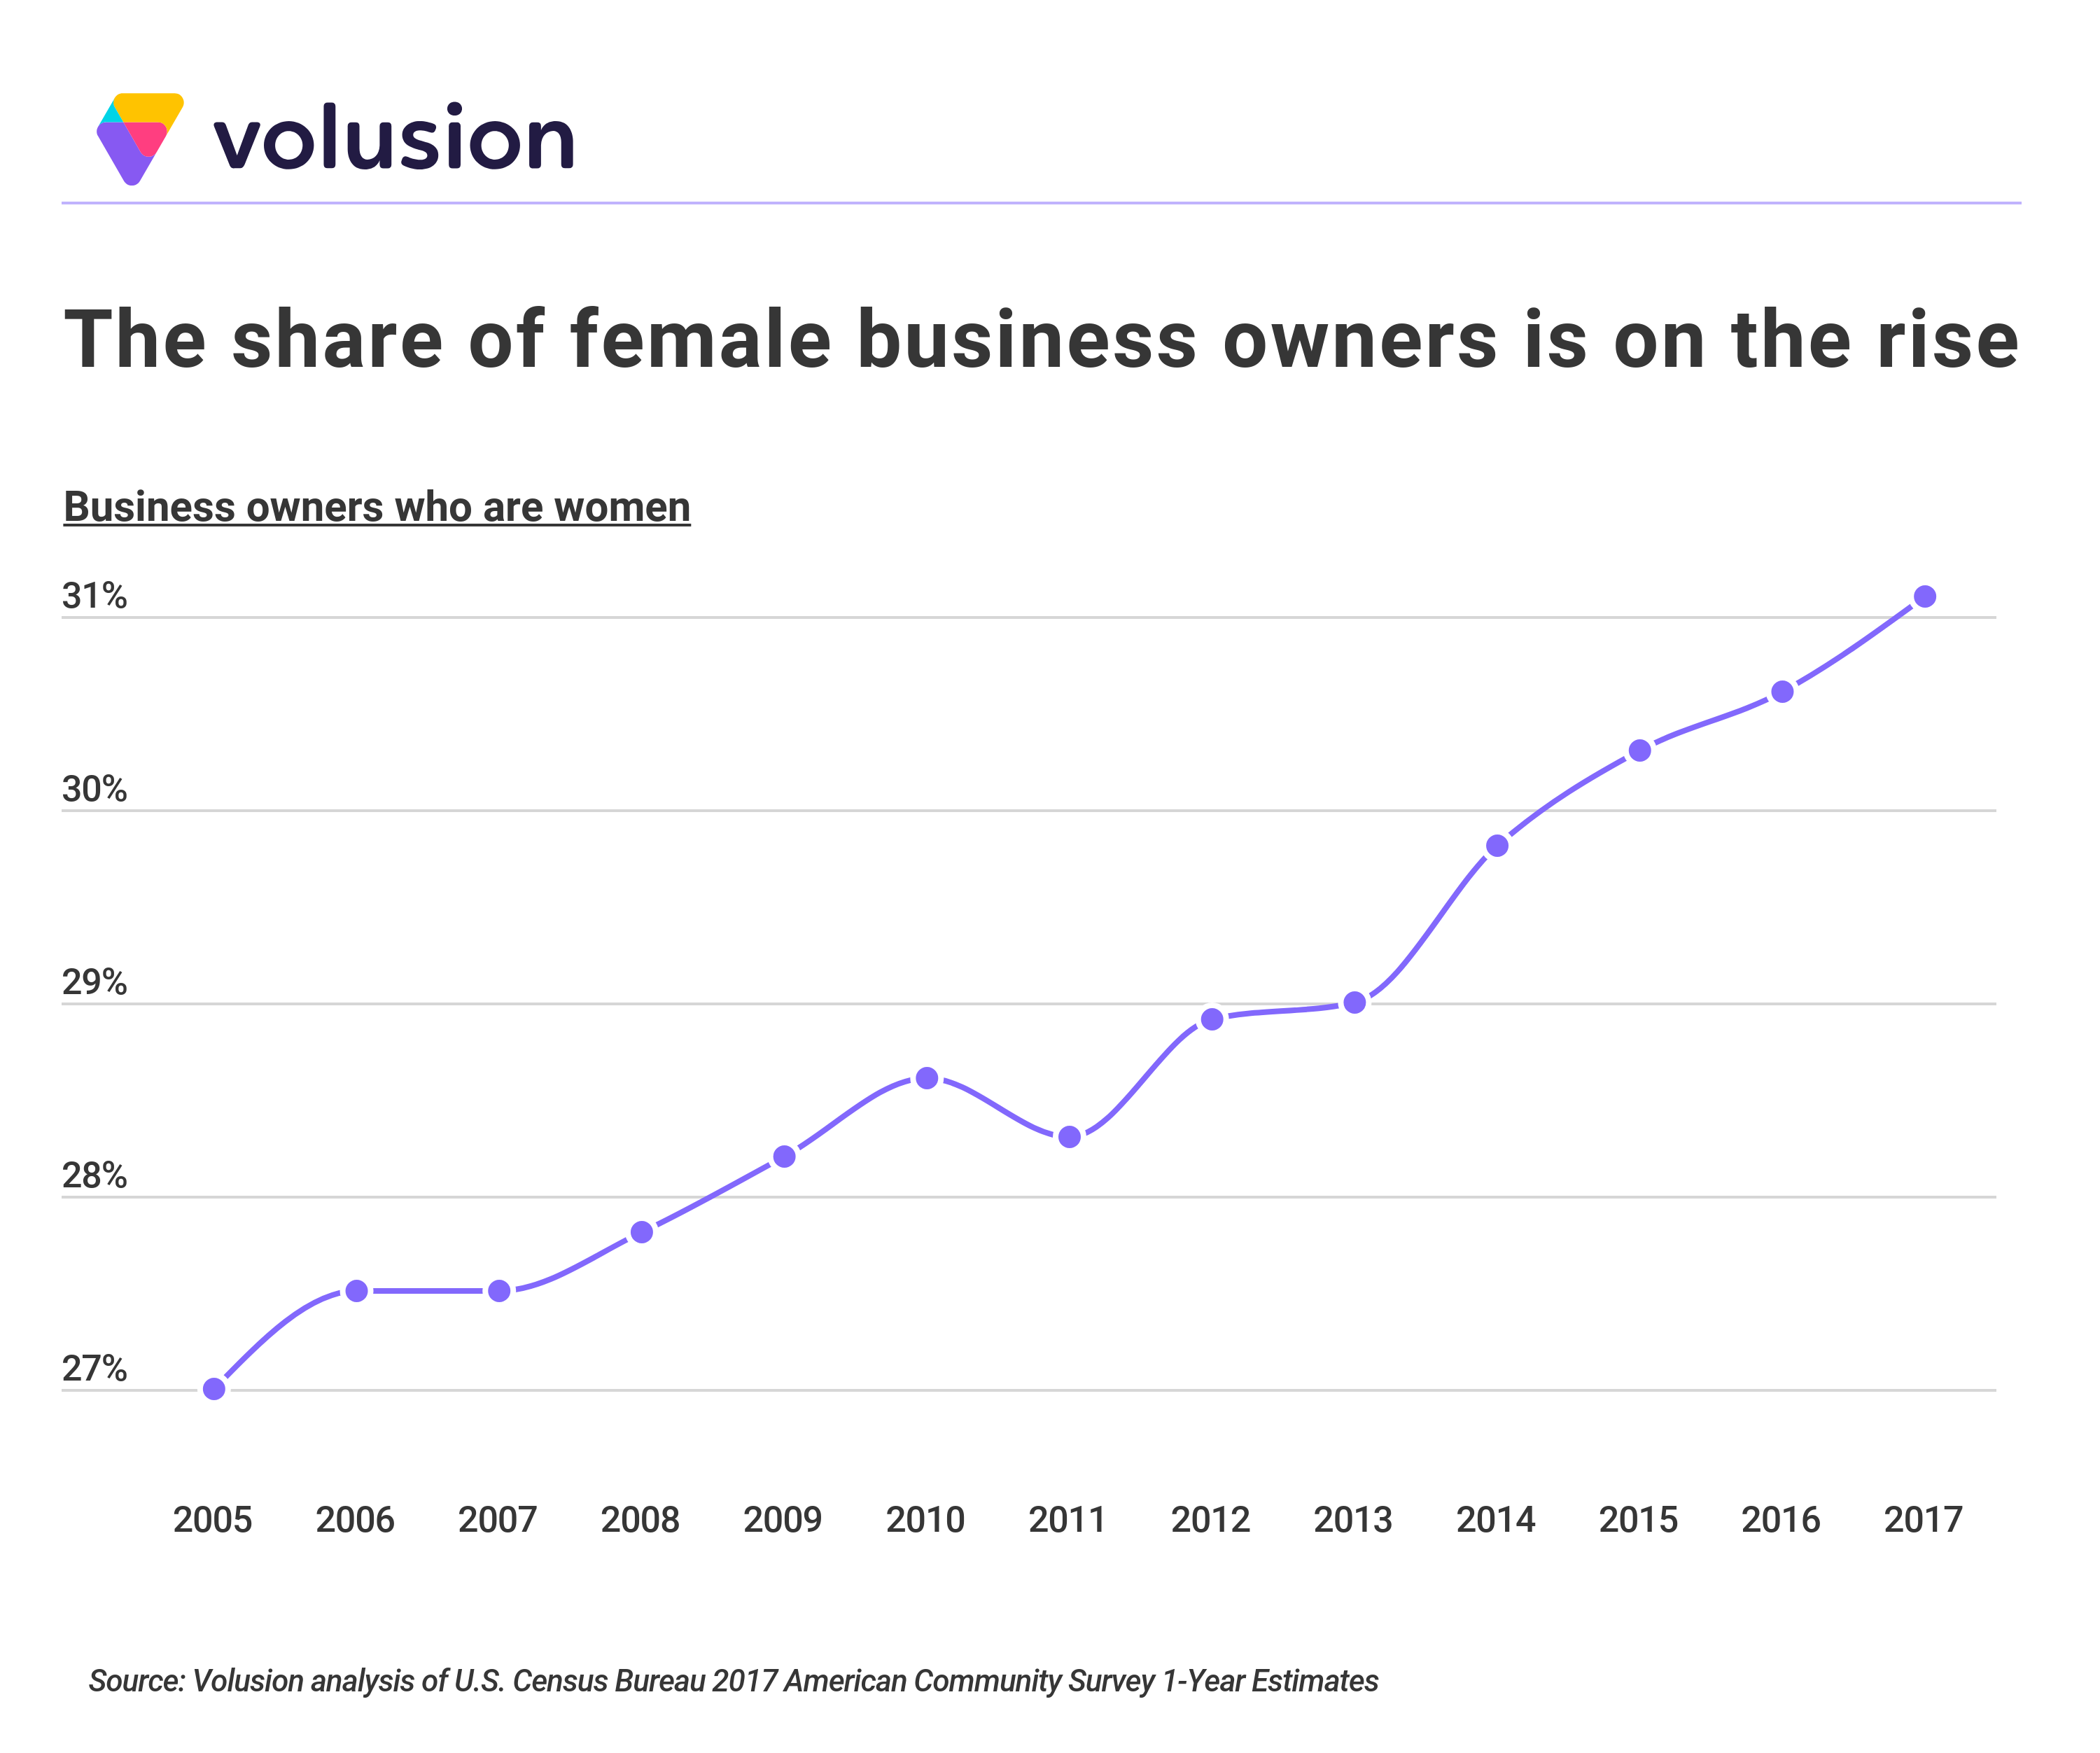 Graph showing an increase of female business owners from 27% to 31% over the years 2005 to 2017